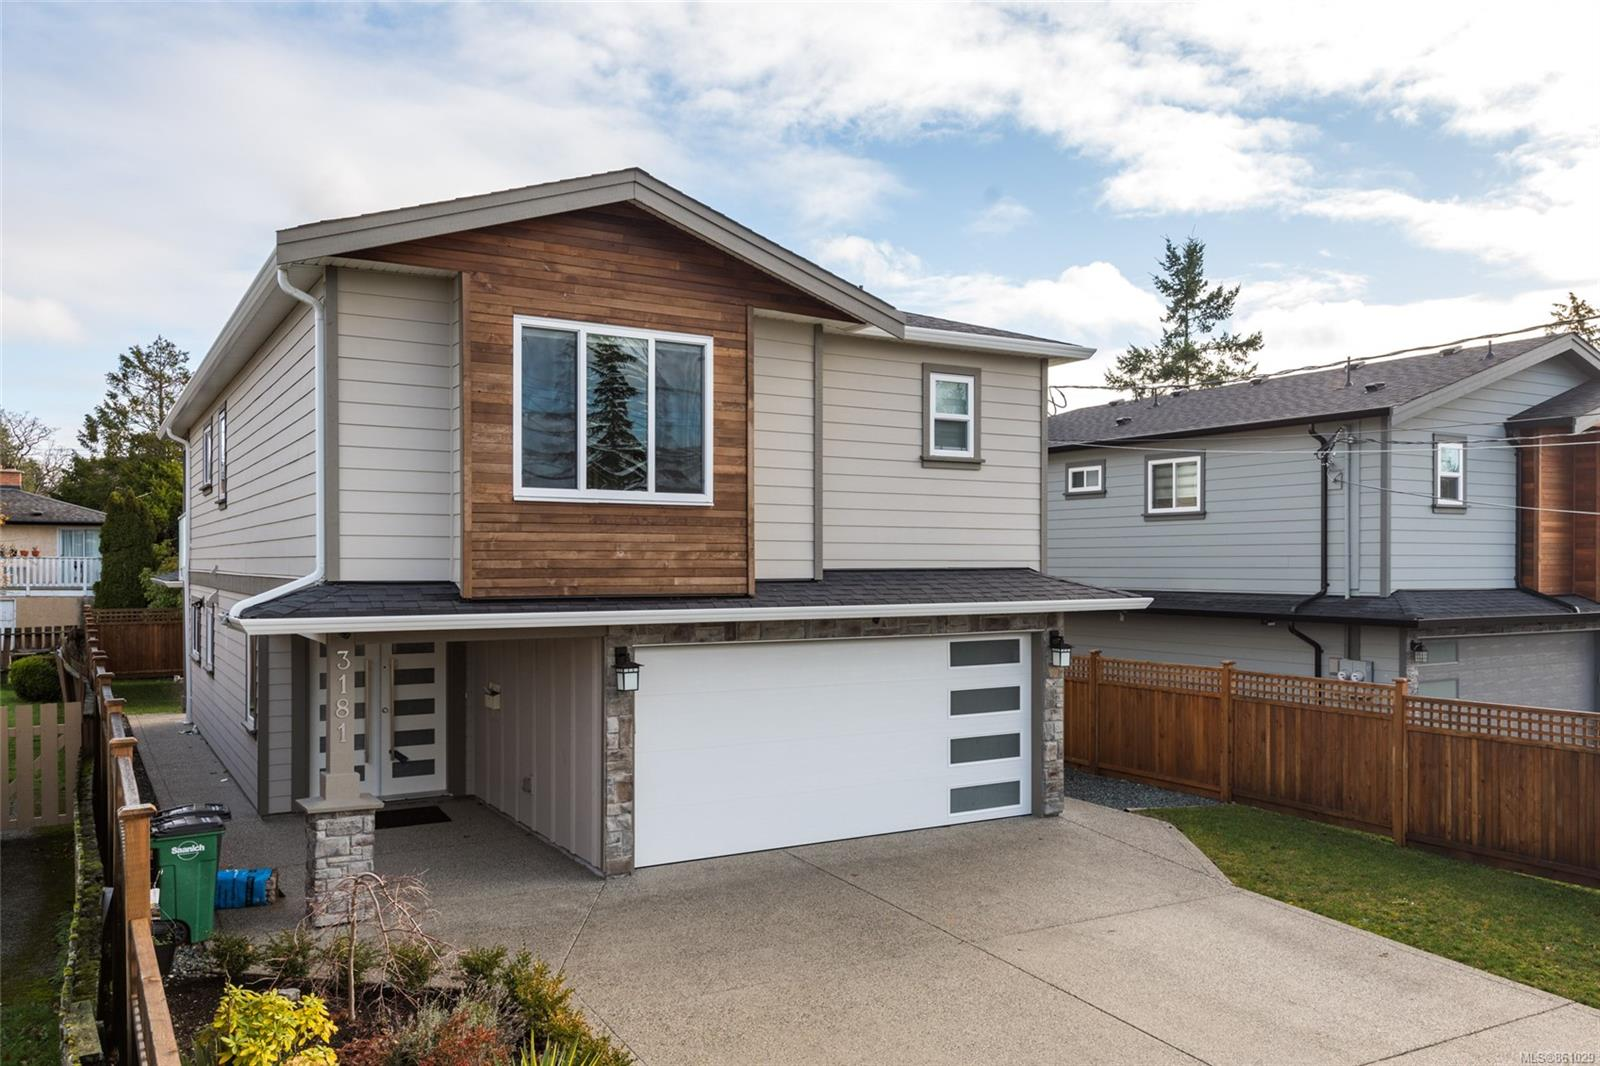 Located on an extremely quiet, one-block-long side street, close & convenient to Camosun College & UVIC, you will find this large near new home. You'll love the large bedrooms in the main home with quality details such as quartz counters, rich wood flooring, crown mouldings, stainless steel appliances, custom LED lighting, and a heat pump for efficient heating and cooling. Enjoy the ultimate in mortgage helpers here with the large, above ground, no-step suite on the ground level, plus a fully detached studio. Live here inexpensively while others pay your mortgage, or simply enjoy this home as a great investment property. No GST!